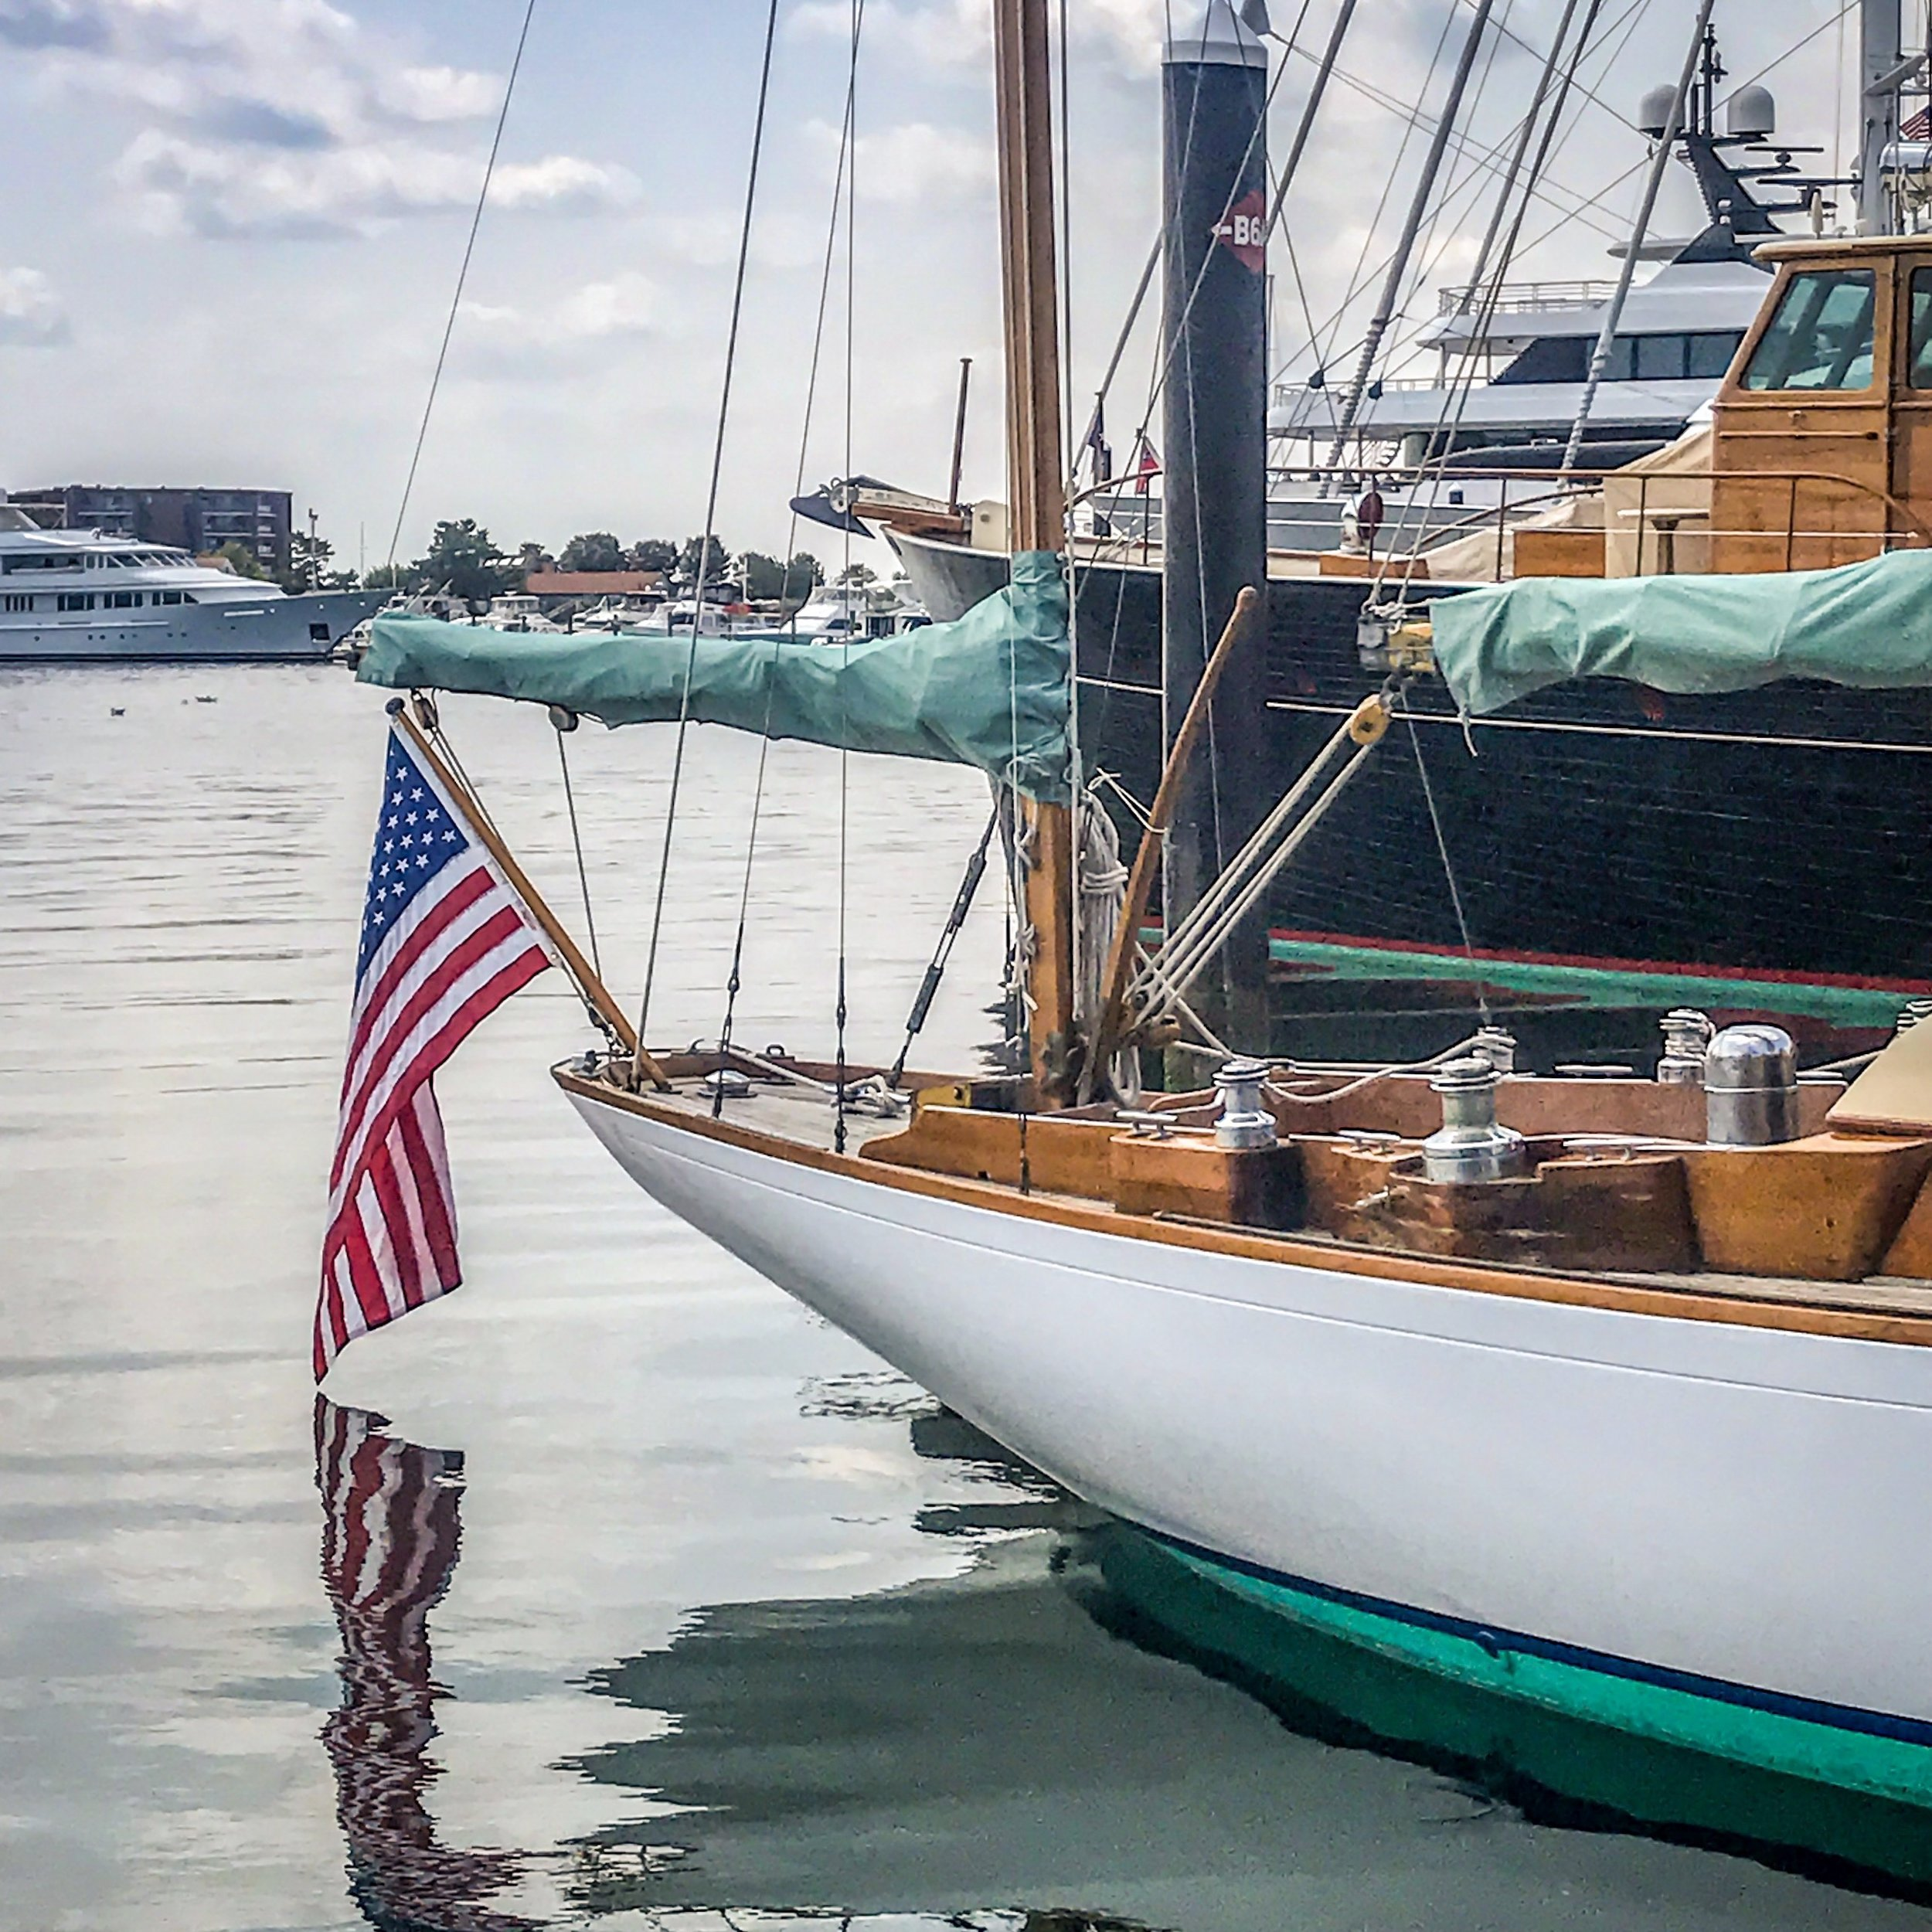 Mr. Badger & Co. - Sailing Chaters Newport and Jamestown.JPG